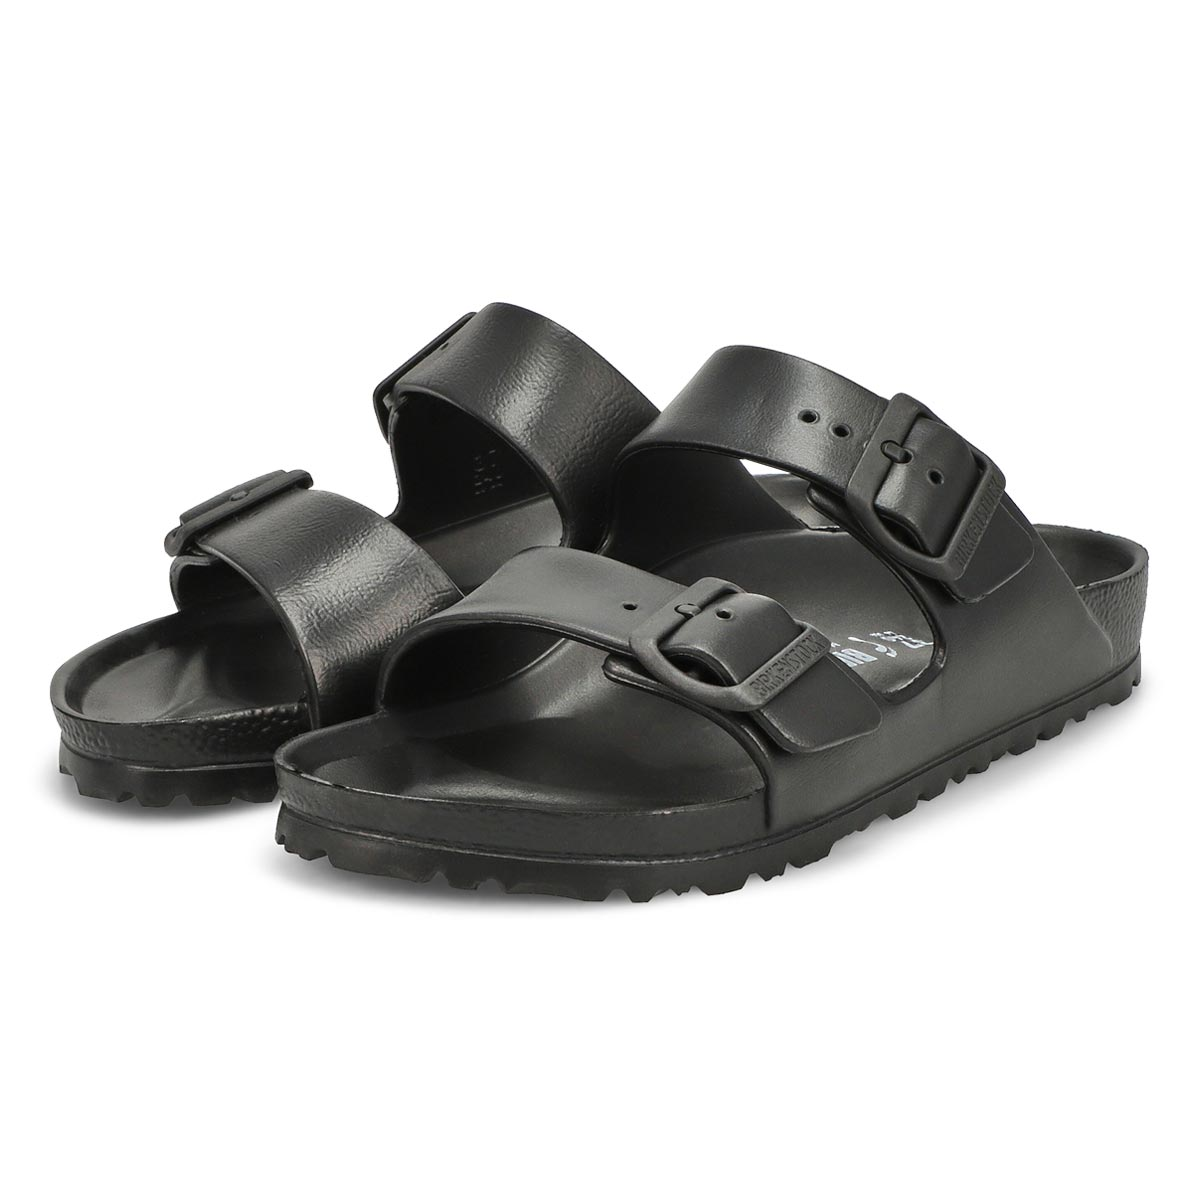 Women's Arizona EVA Narrow Sandal - Black